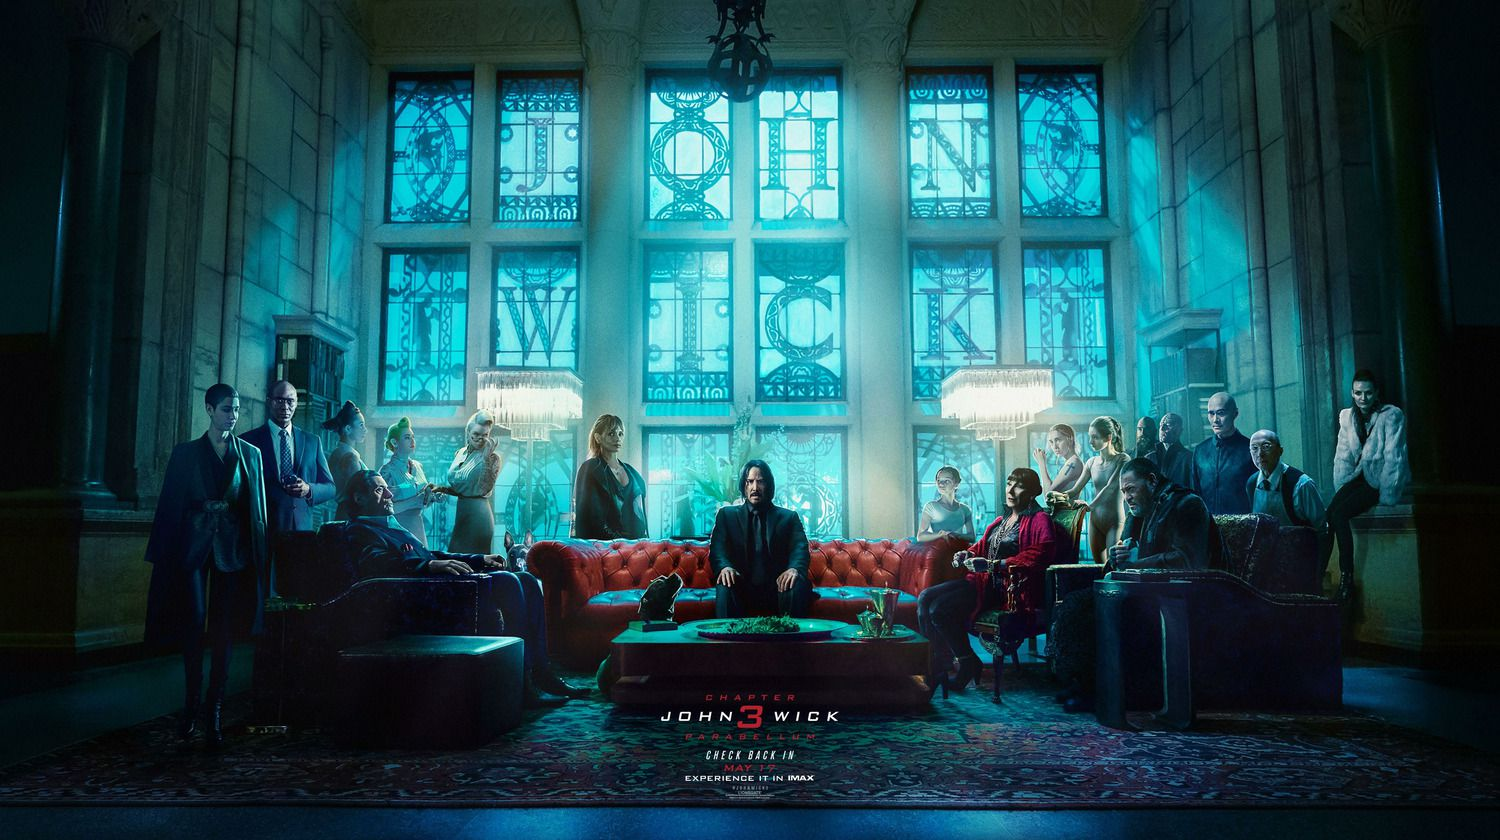 John Wick Chapter 3 - Parabellum 2019 Check back in - Keanu Reeves, Halle Berry, Ian McShane, Laurence Fishburne - Hotel Hall BANNER